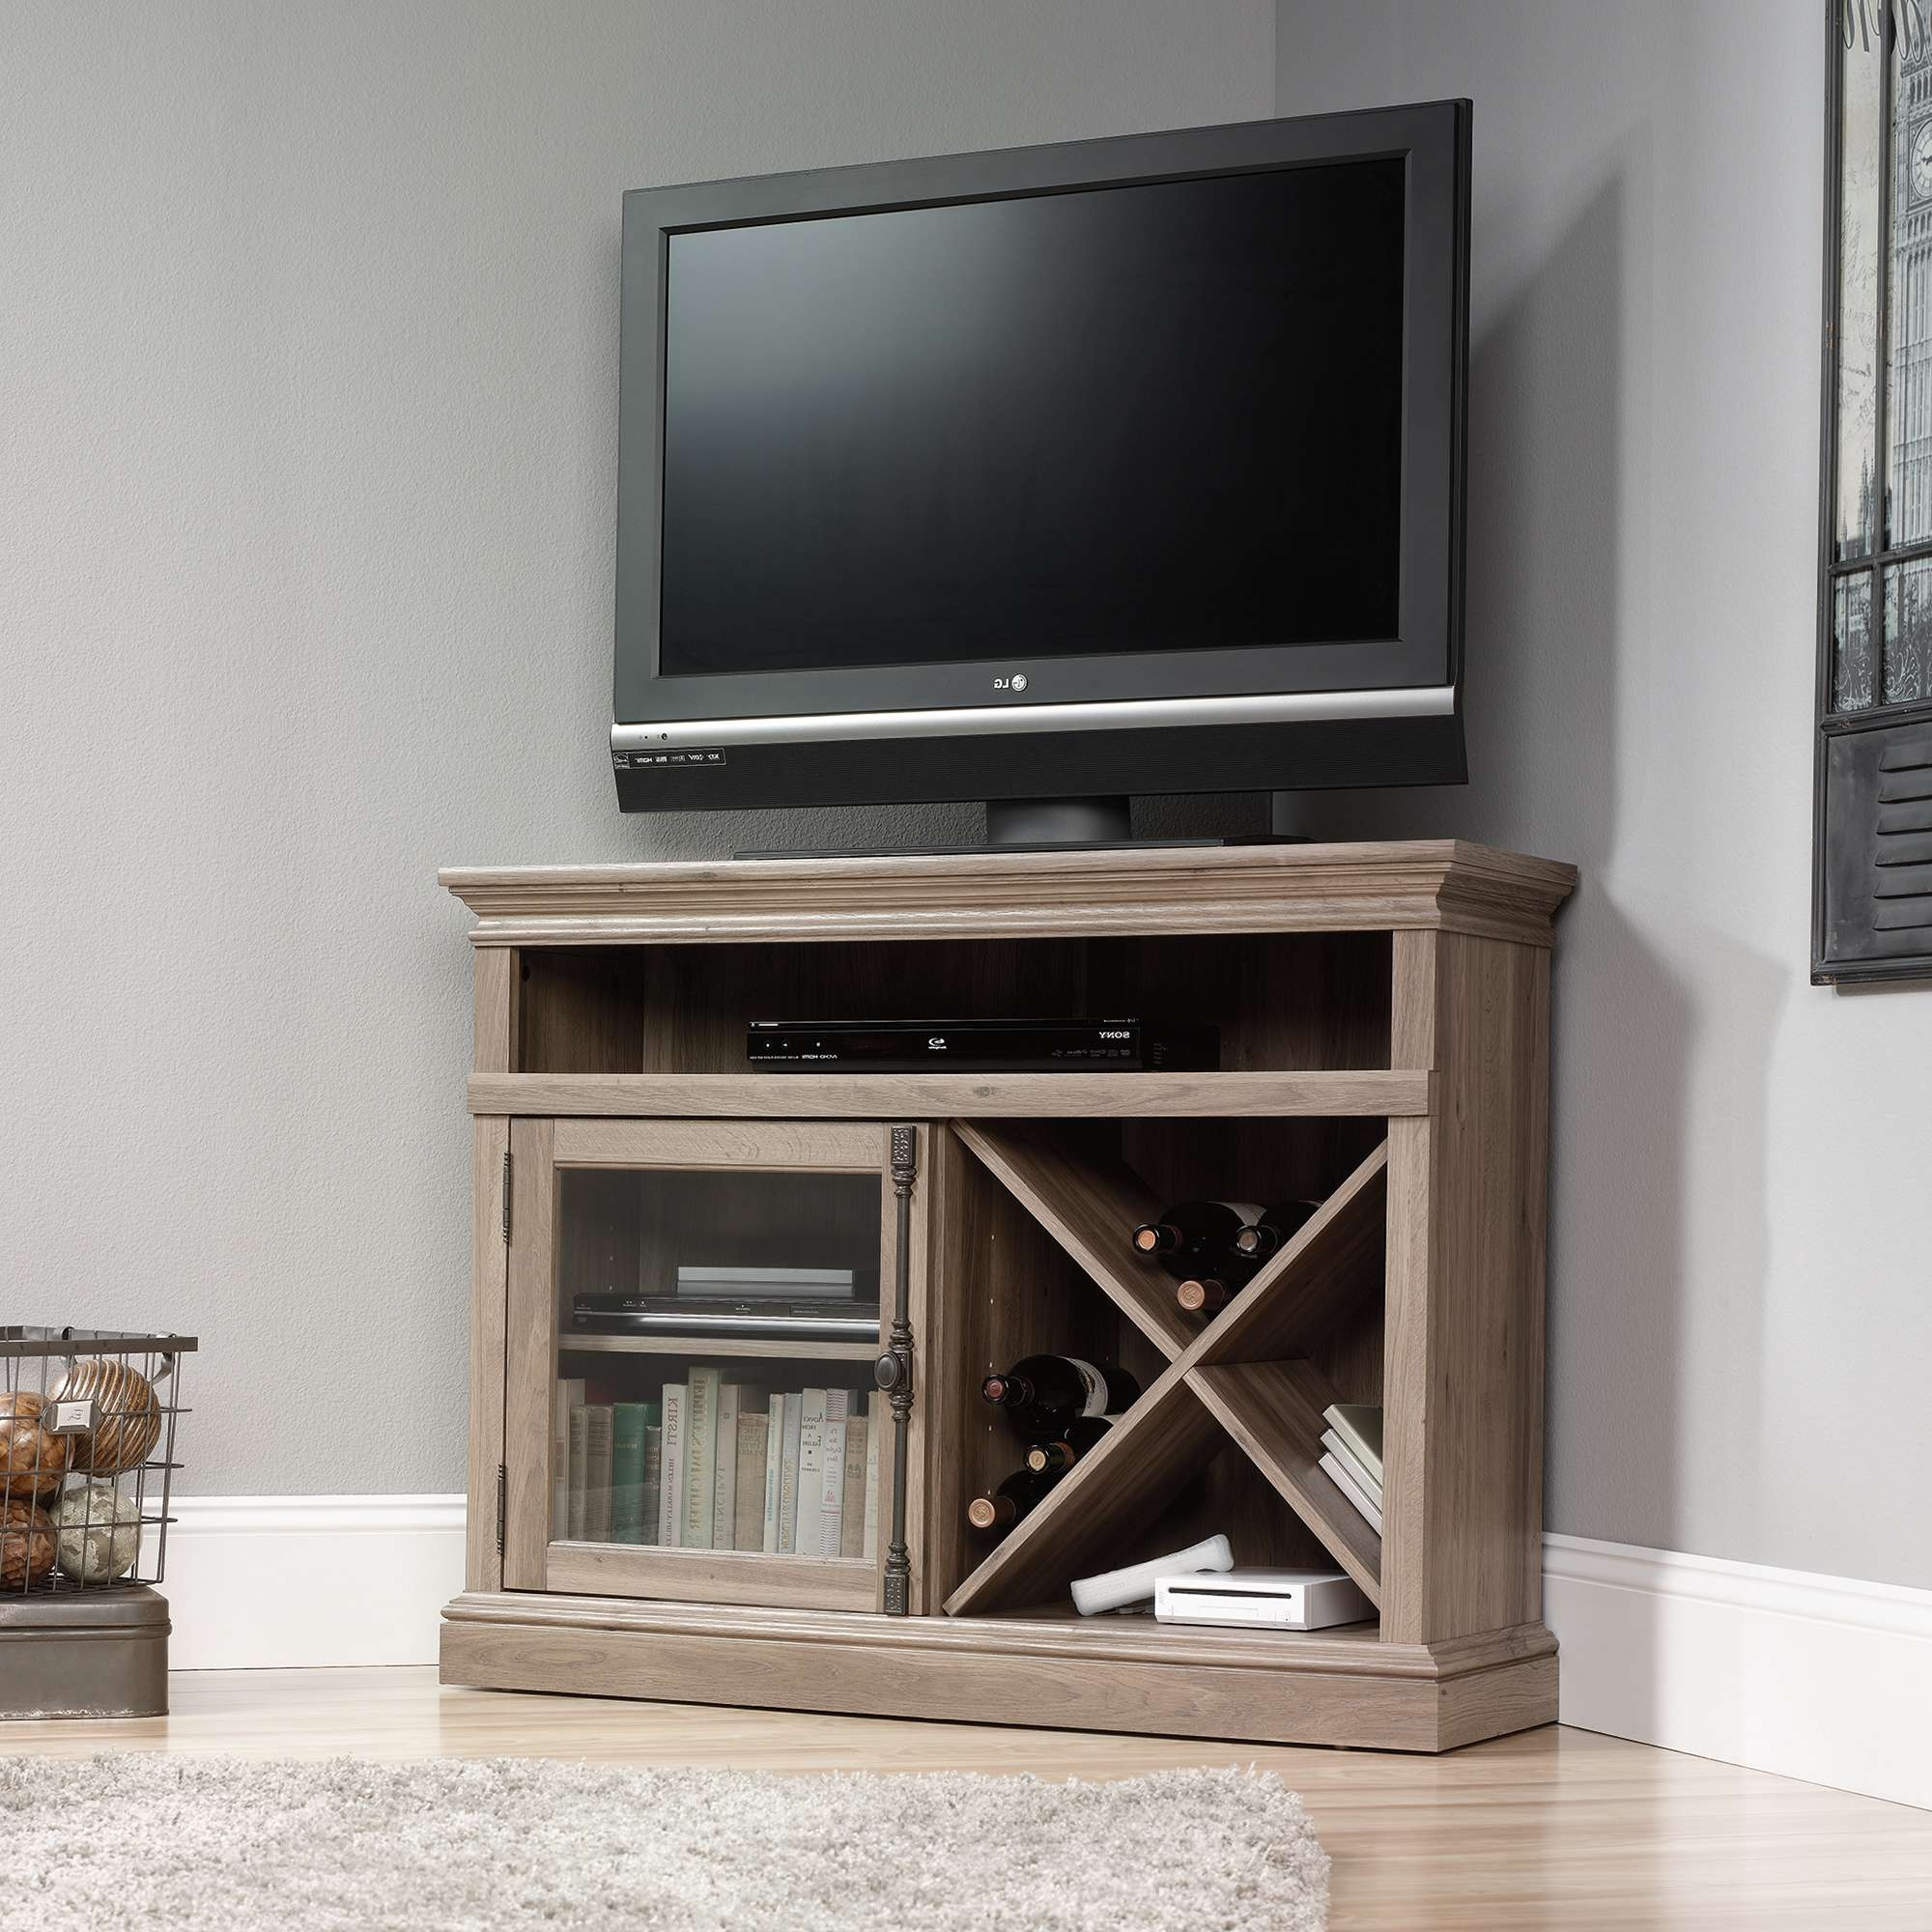 Barrister Lane | Corner Tv Stand | 414729 | Sauder With Regard To Grey Corner Tv Stands (View 3 of 15)